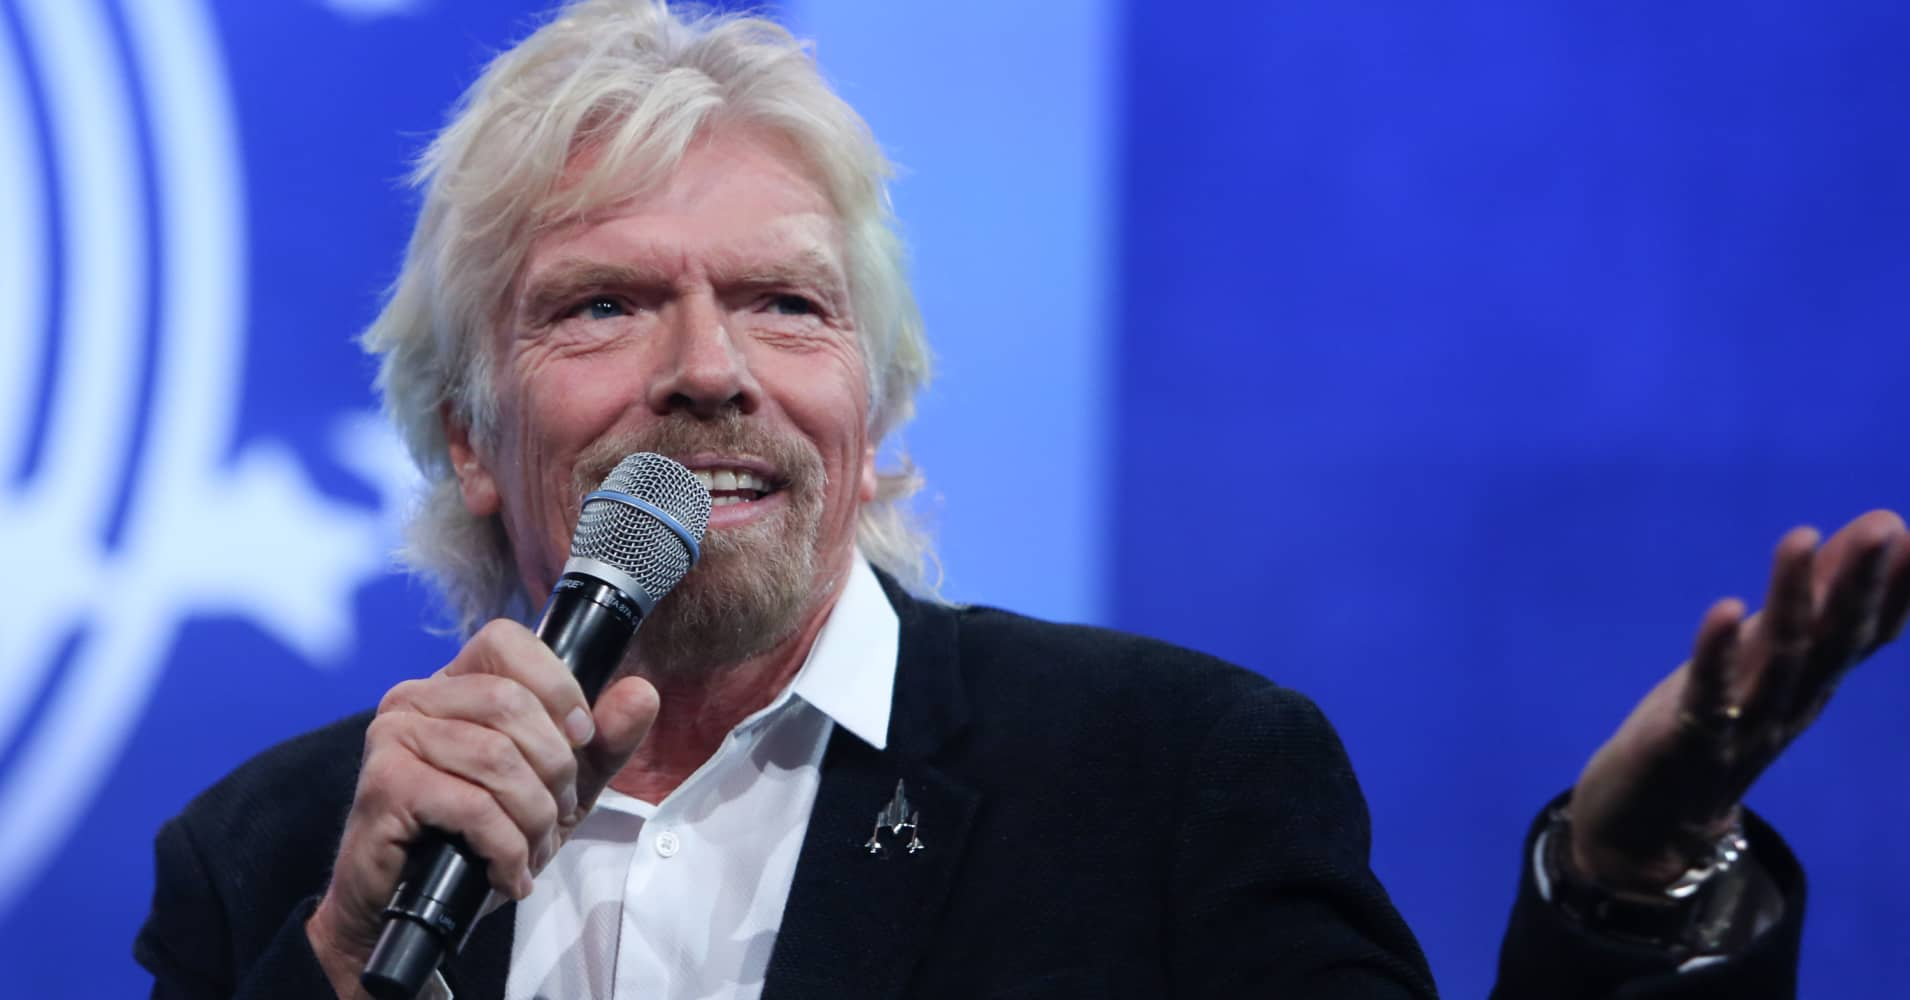 Richard Branson at the 2105 CGI Annual Meeting in New York.